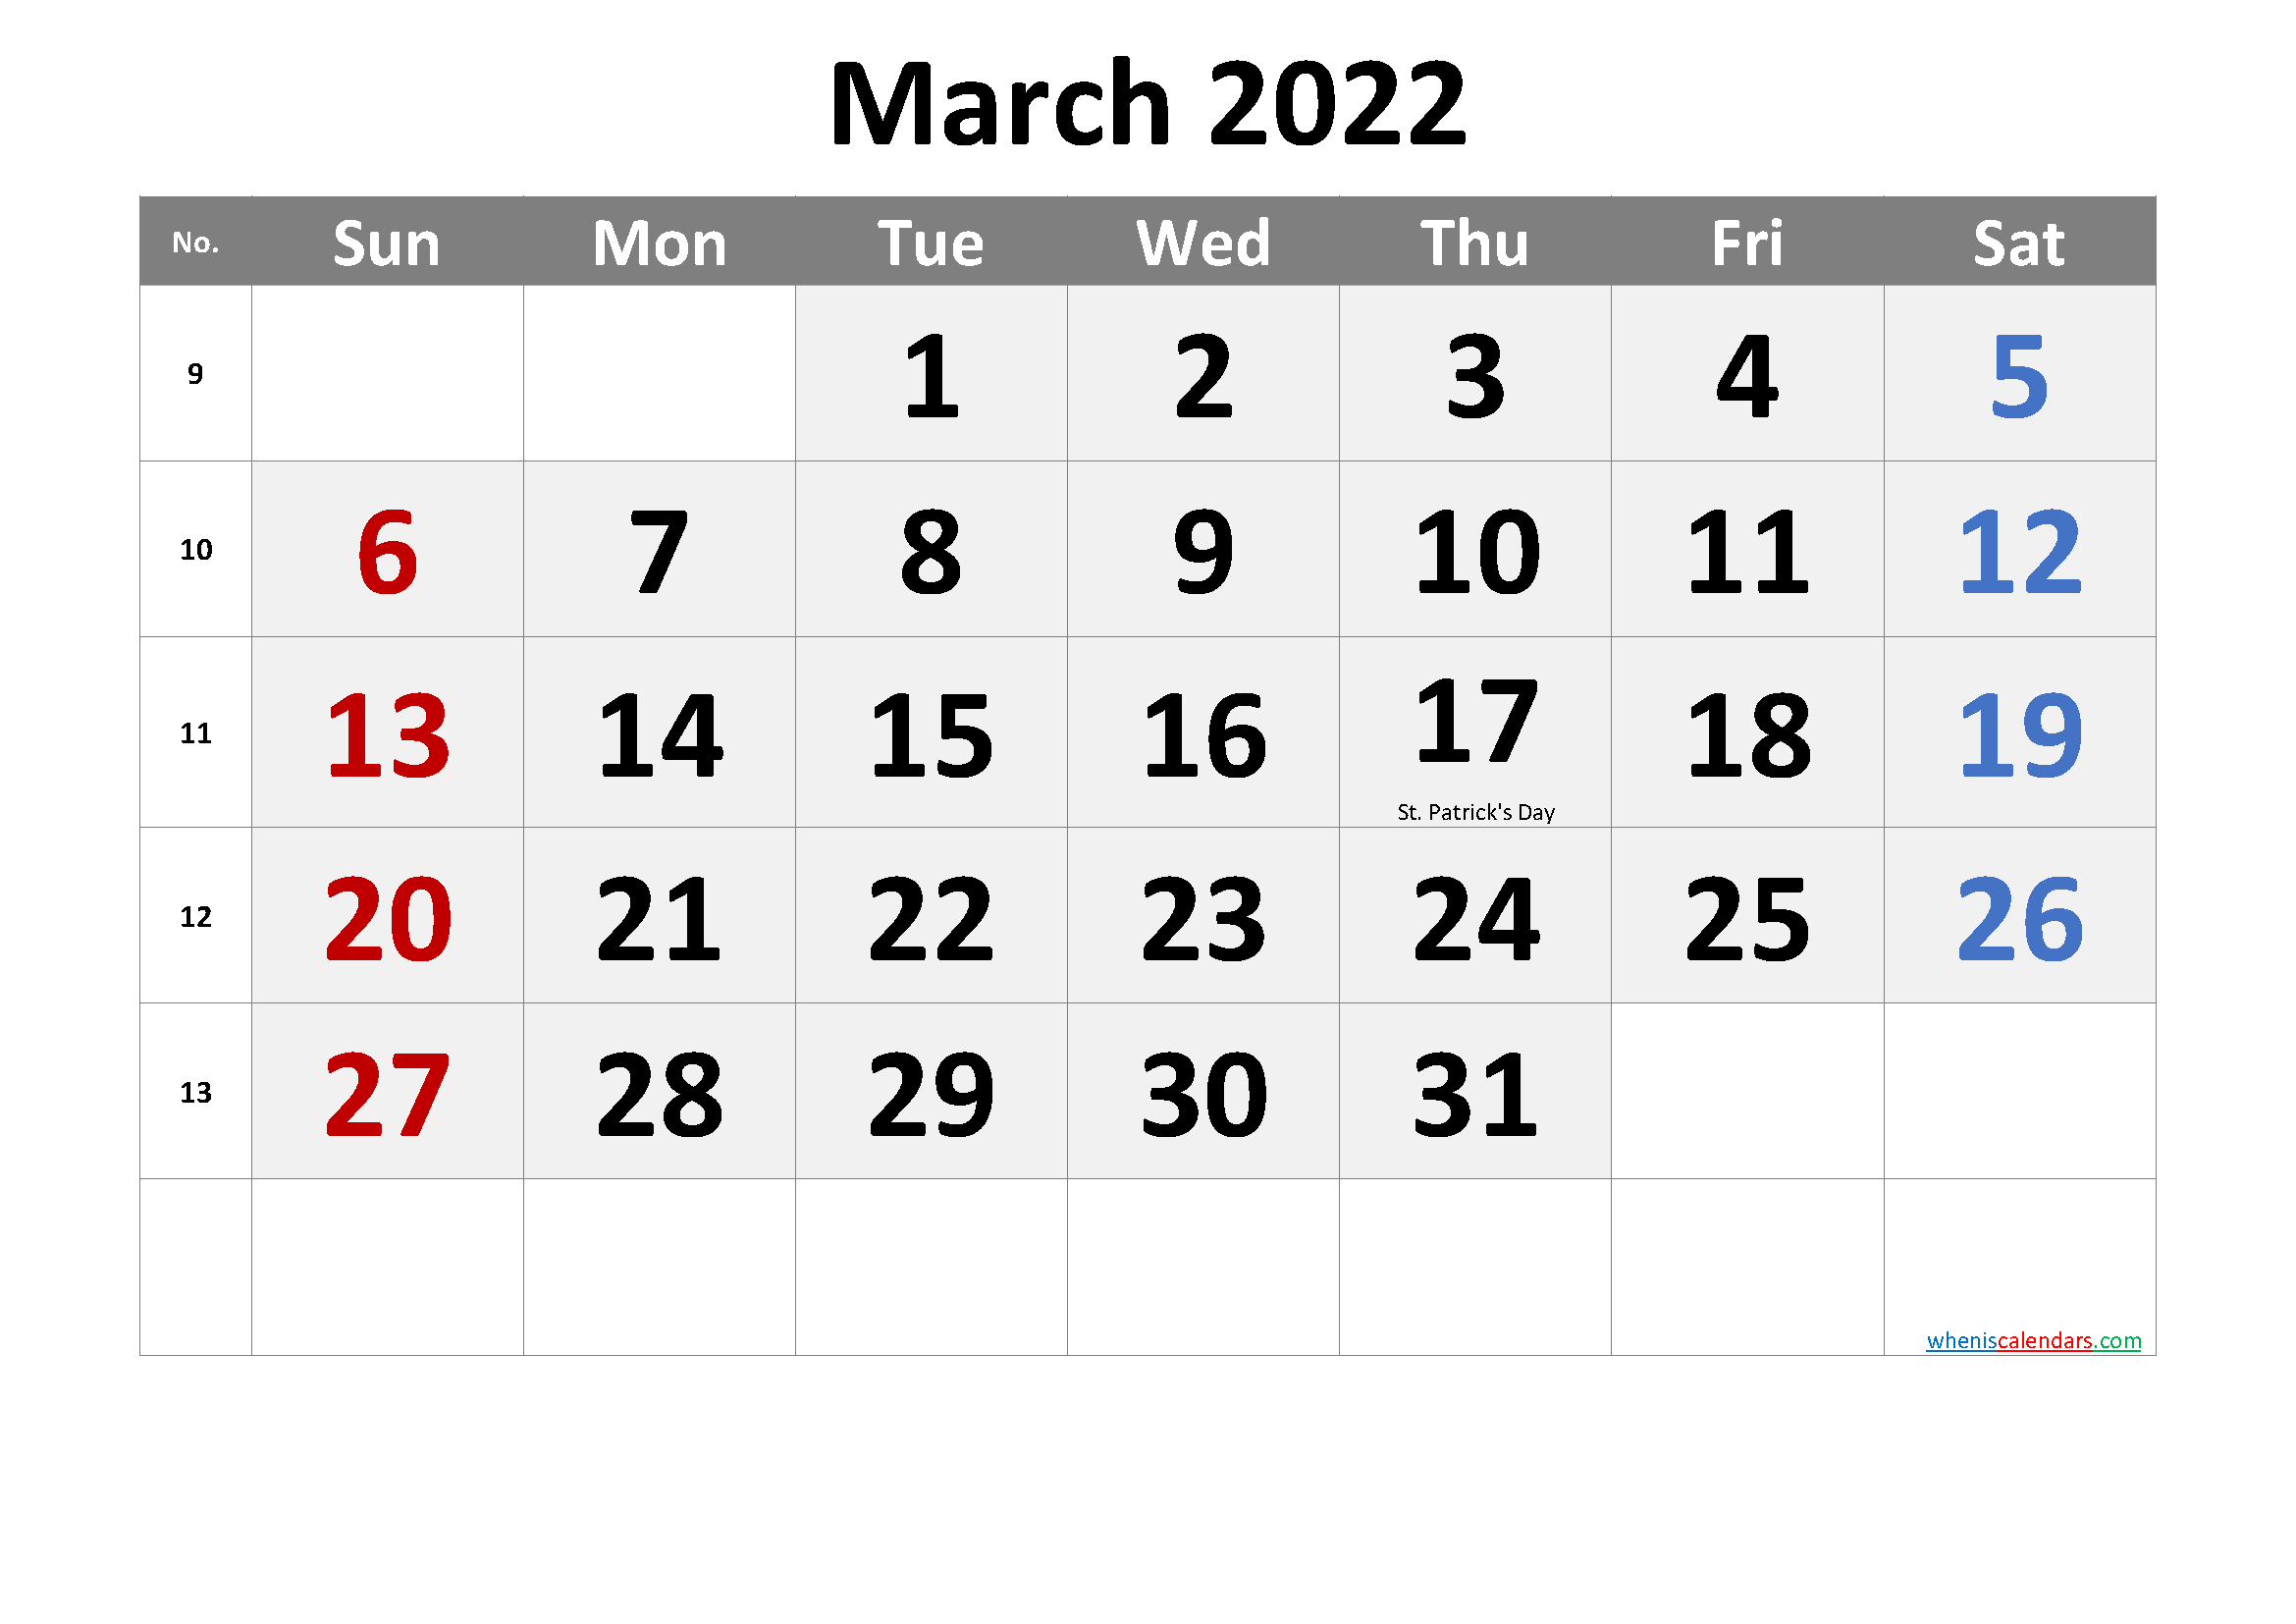 March 2022 Printable Calendar with Holidays - Free ...